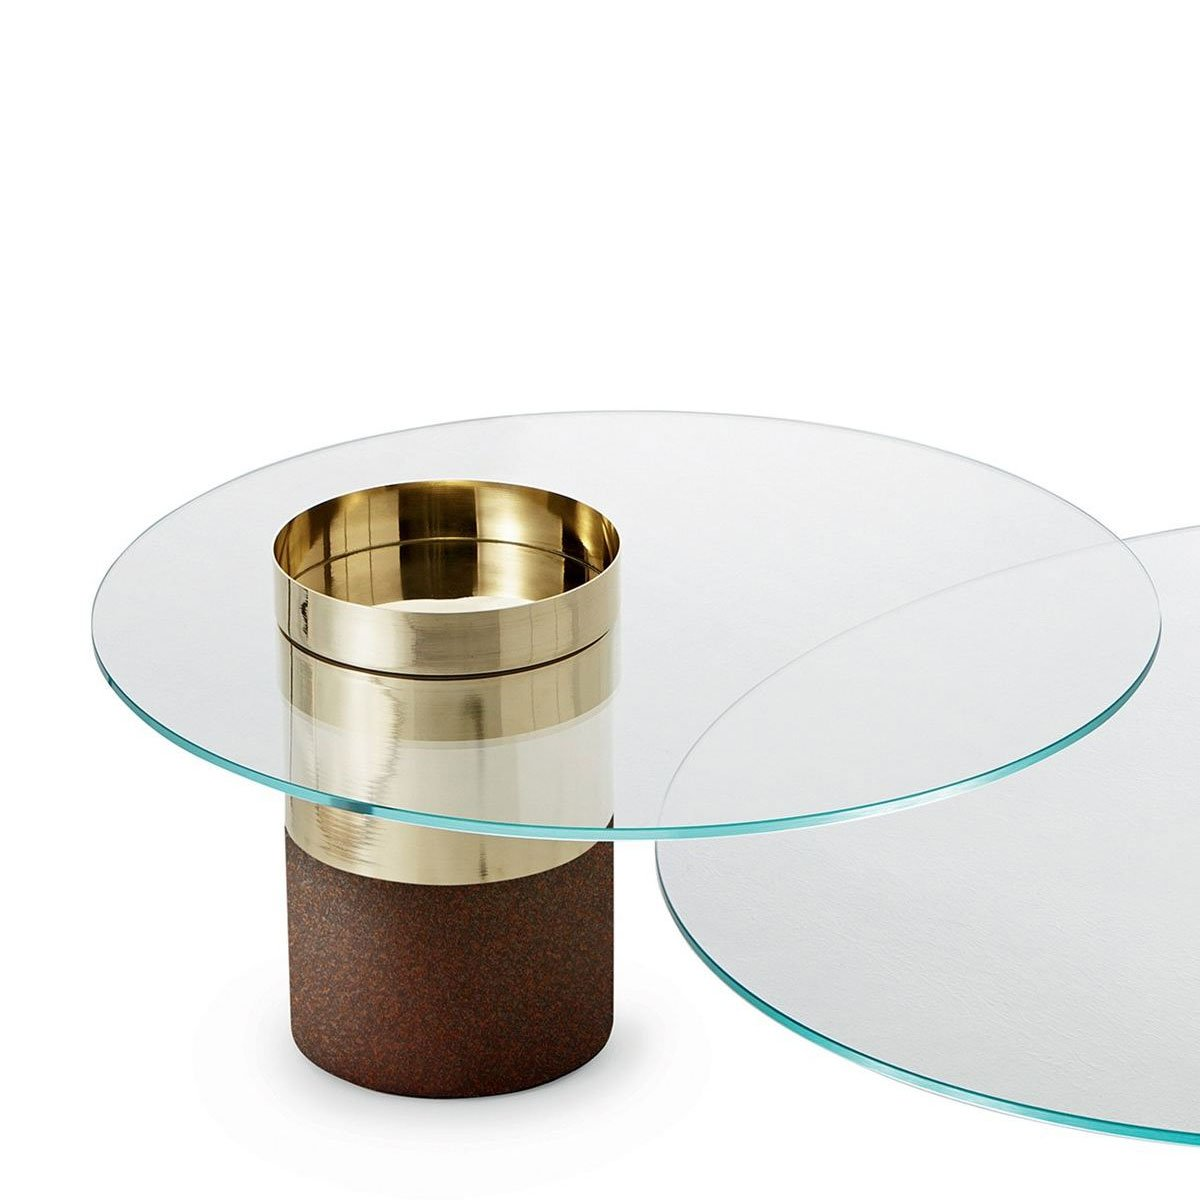 Haumea Glass And Metal Coffee Table By Gallotti & Radice. Corner Desk Table. Coffee Table Converts To Desk. San Diego Airport Information Desk. L Shaped Kids Desk. Lifetime Table. Storage Drawer Organizer. Adjustable Stand Up Desk. Desk Lamp Magnifier